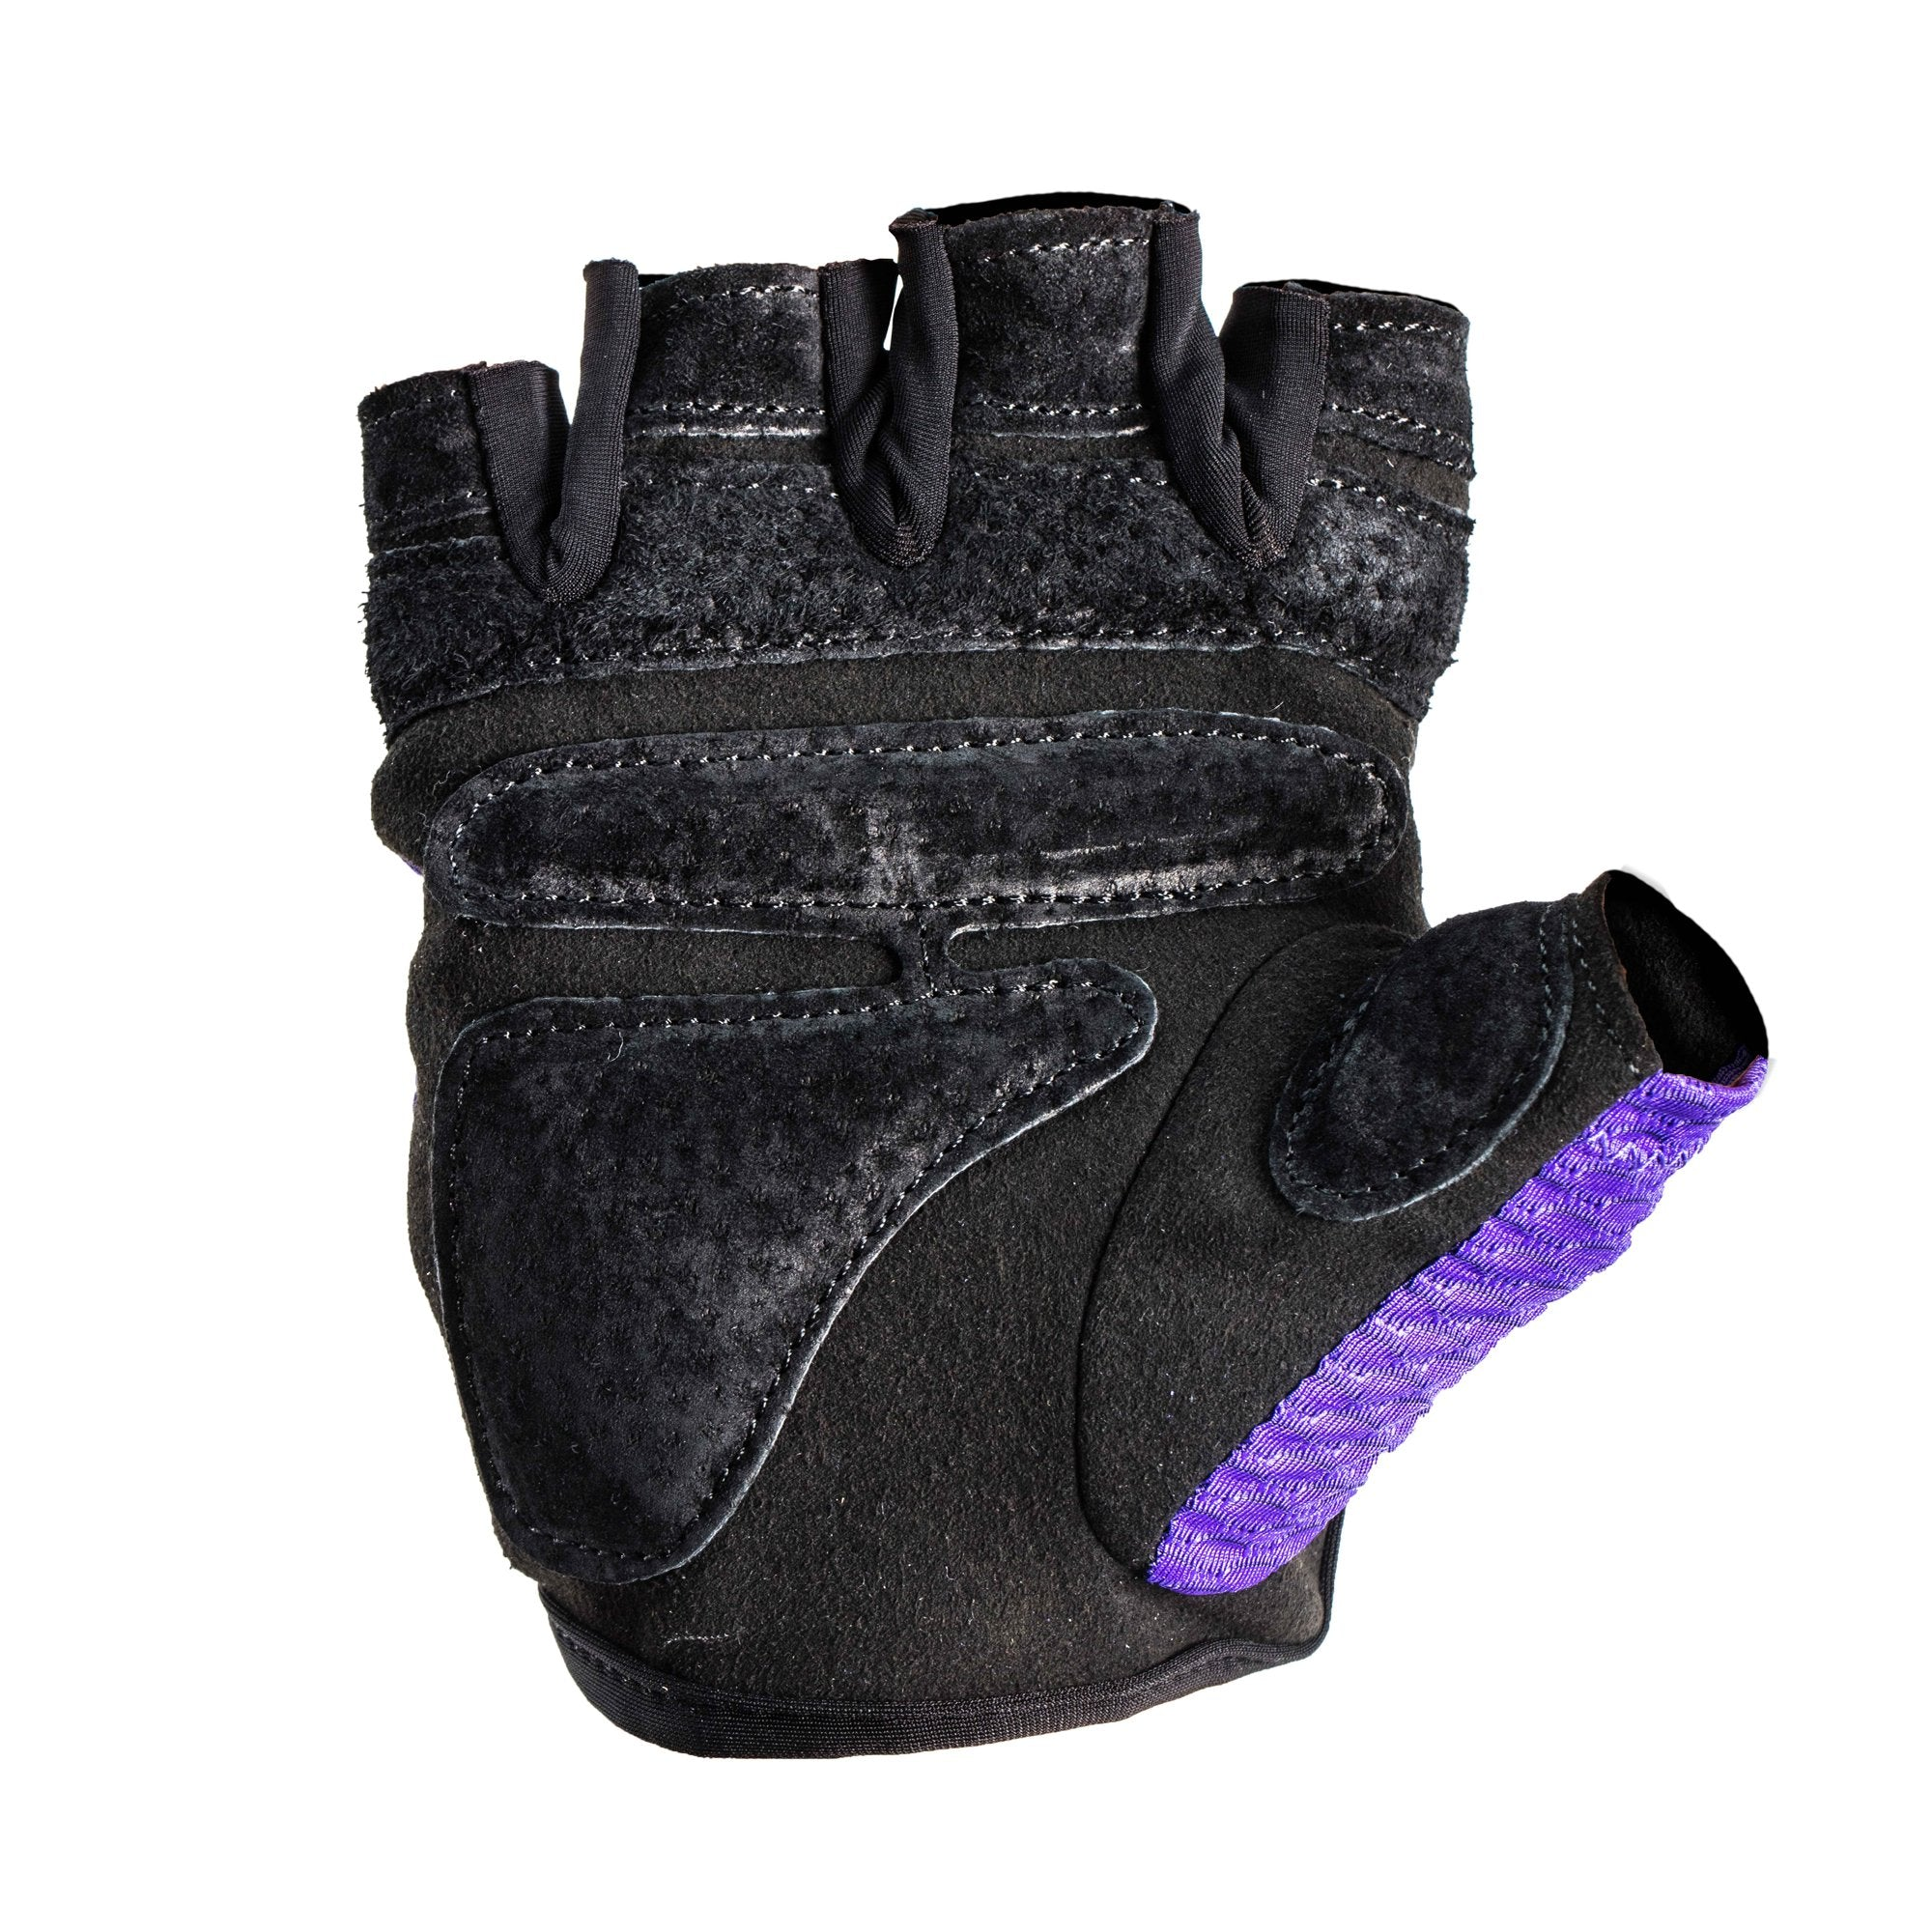 Harbinger Women's Flexfit Weightlifting Gloves with Flexible Cushioned Leather Palm (Pair), Purple, Medium - yrGear